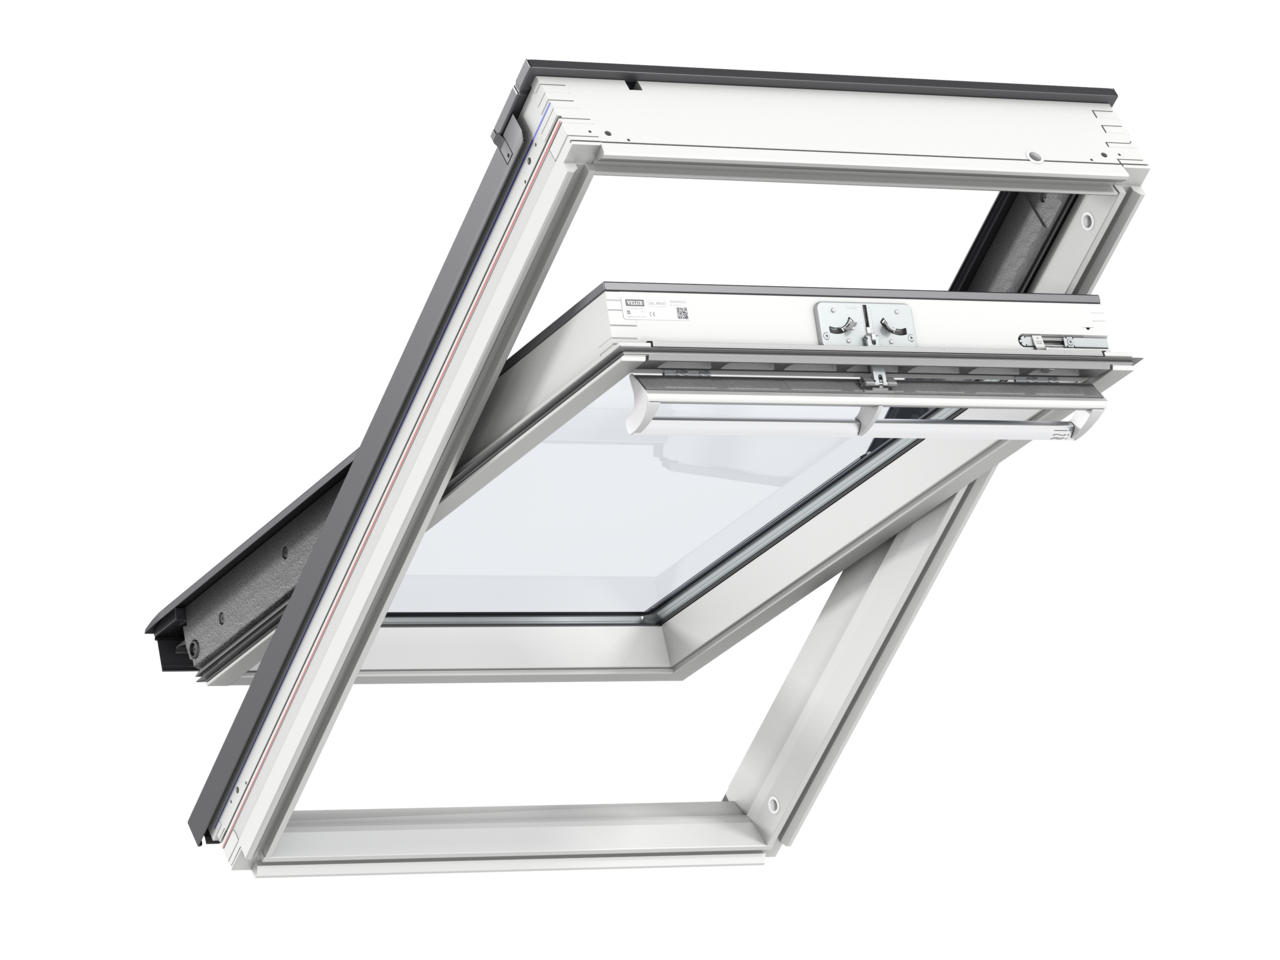 Velux GGL CK04 550 x 980mm Centre Pivot 60Pane Roof Window - White Painted